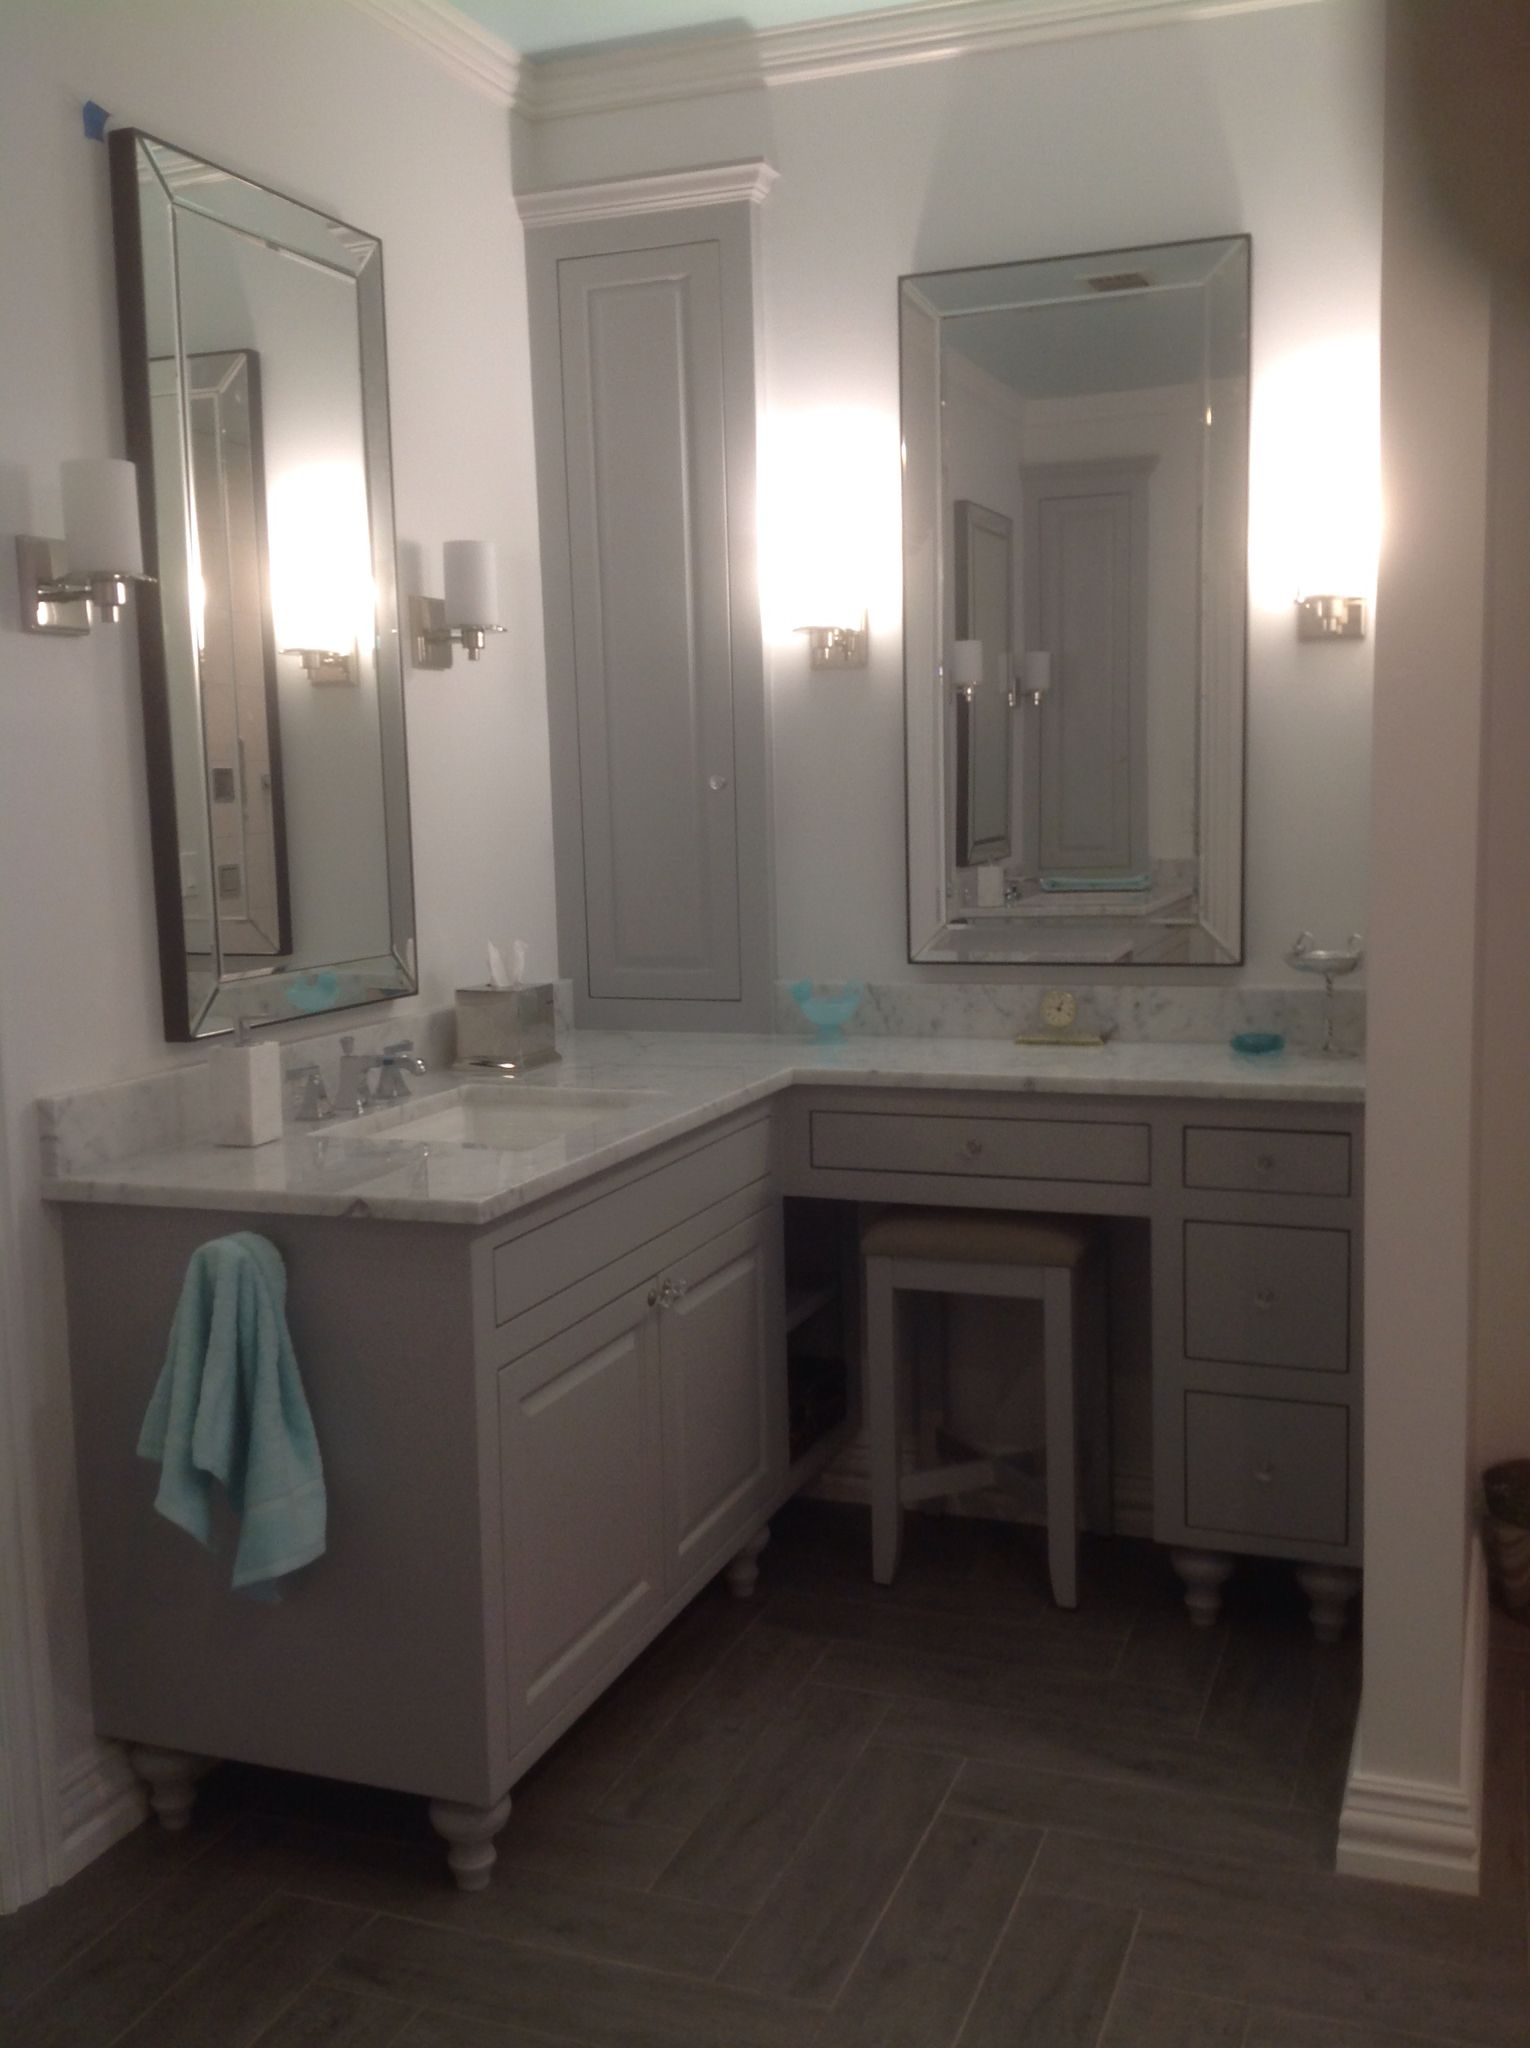 Judy s vanity area with stool Kohler Memoirs sink and faucet